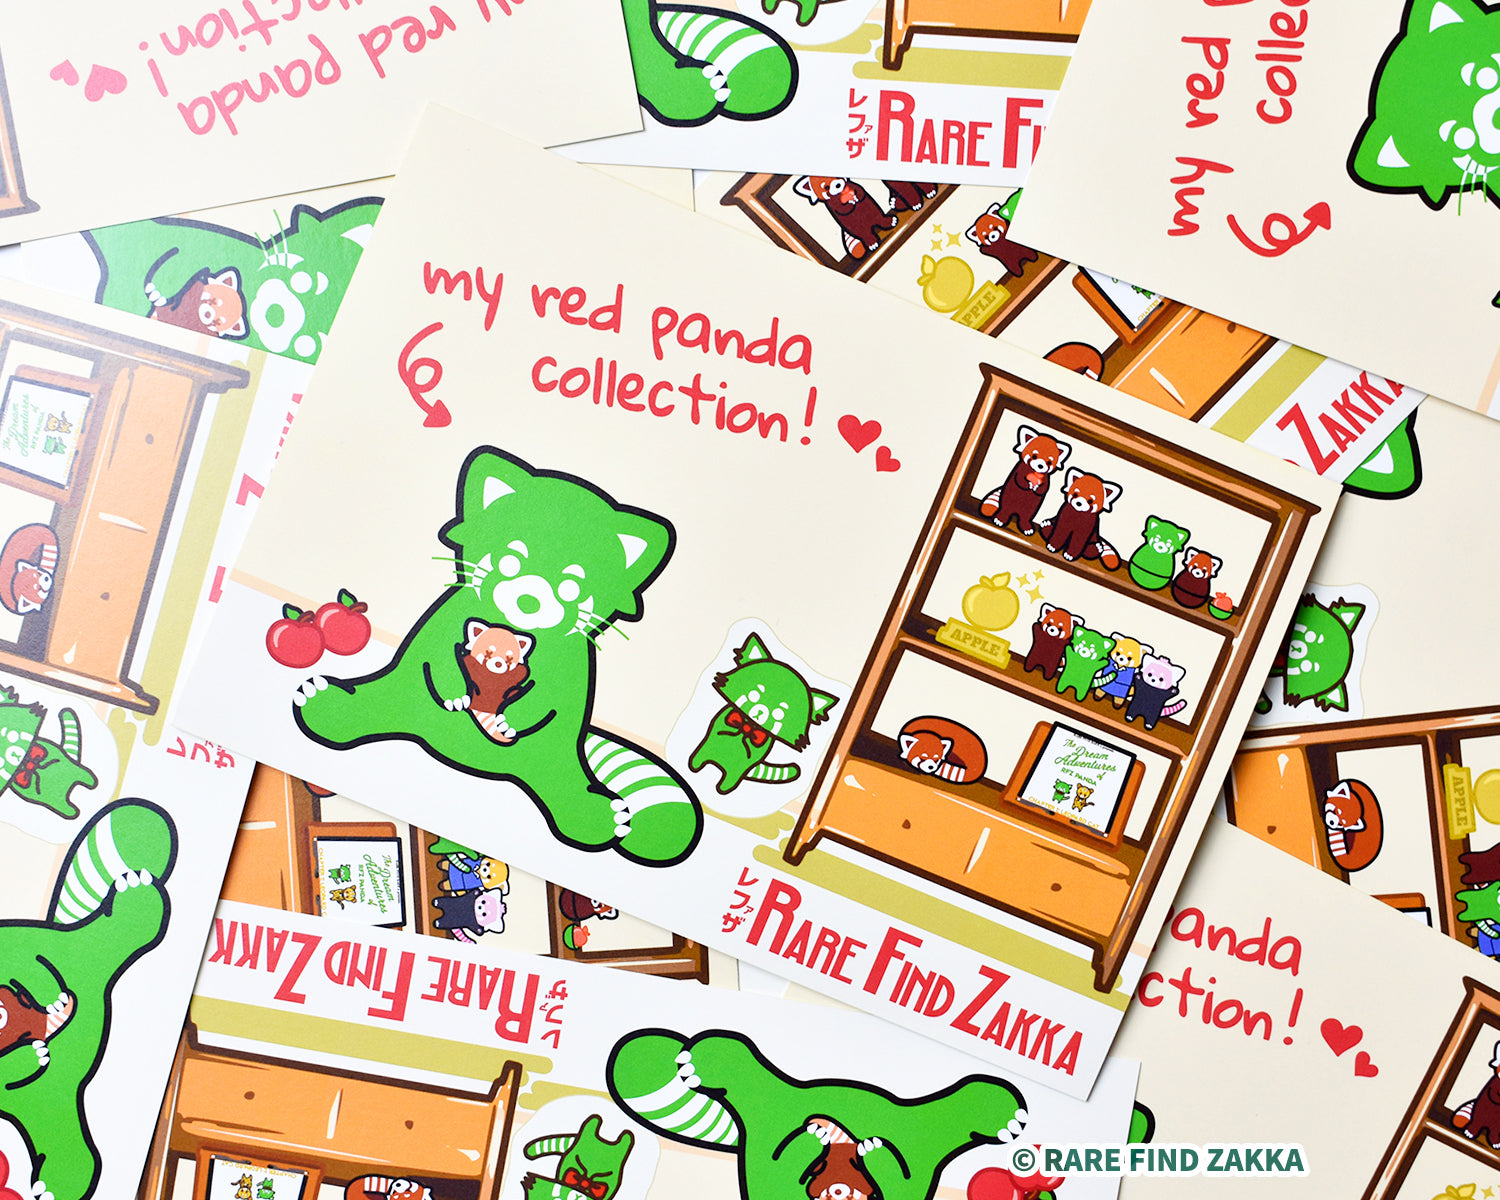 RFZ ORIGINALS 明信片系列 No.03「my red panda collection ♥」